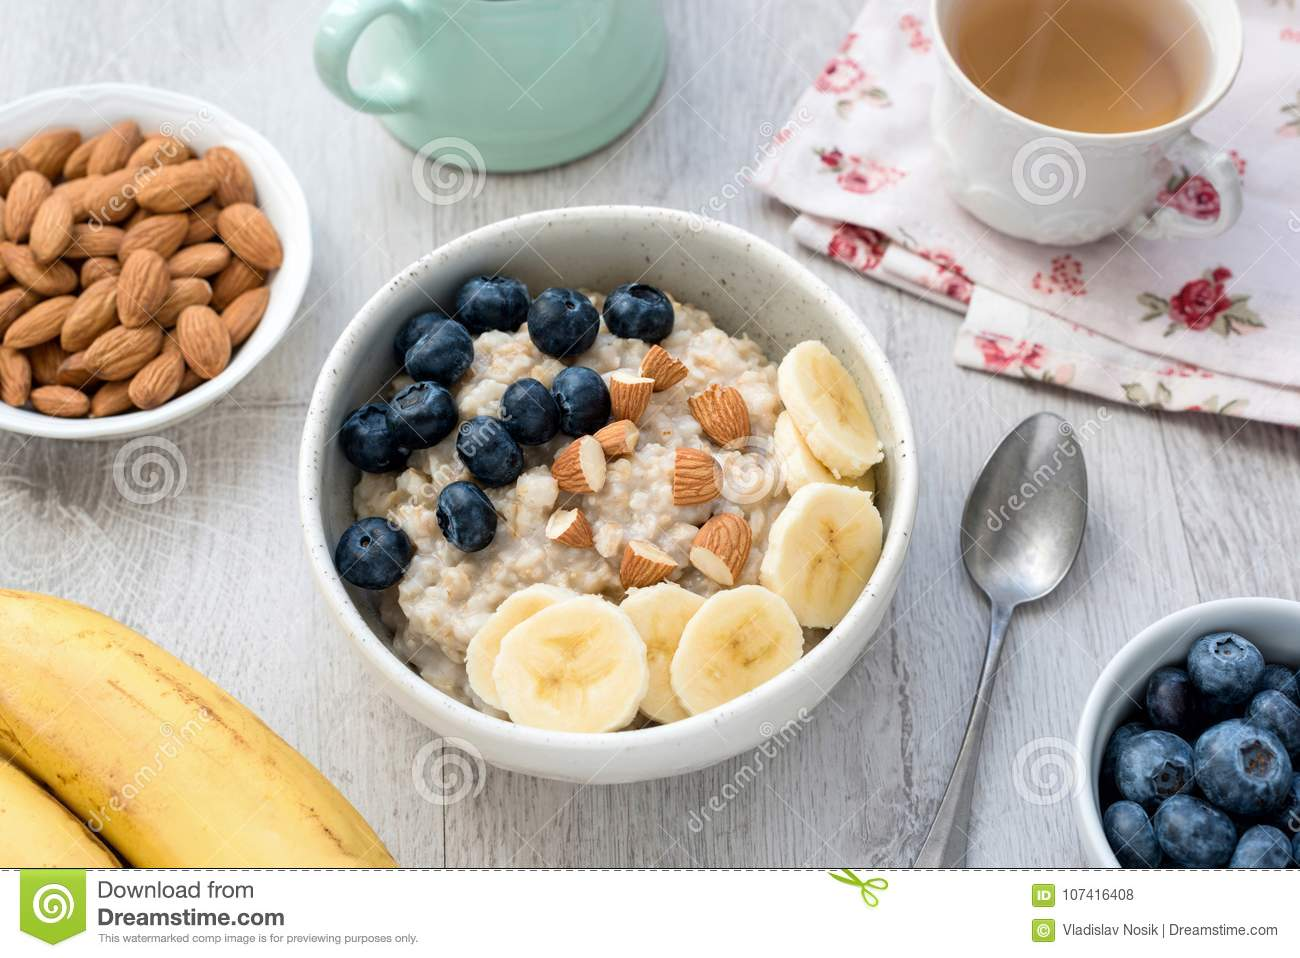 Healthy Breakfast Oatmeal Porridge Bowl with Fruits and Nuts and Cup of Green Tea